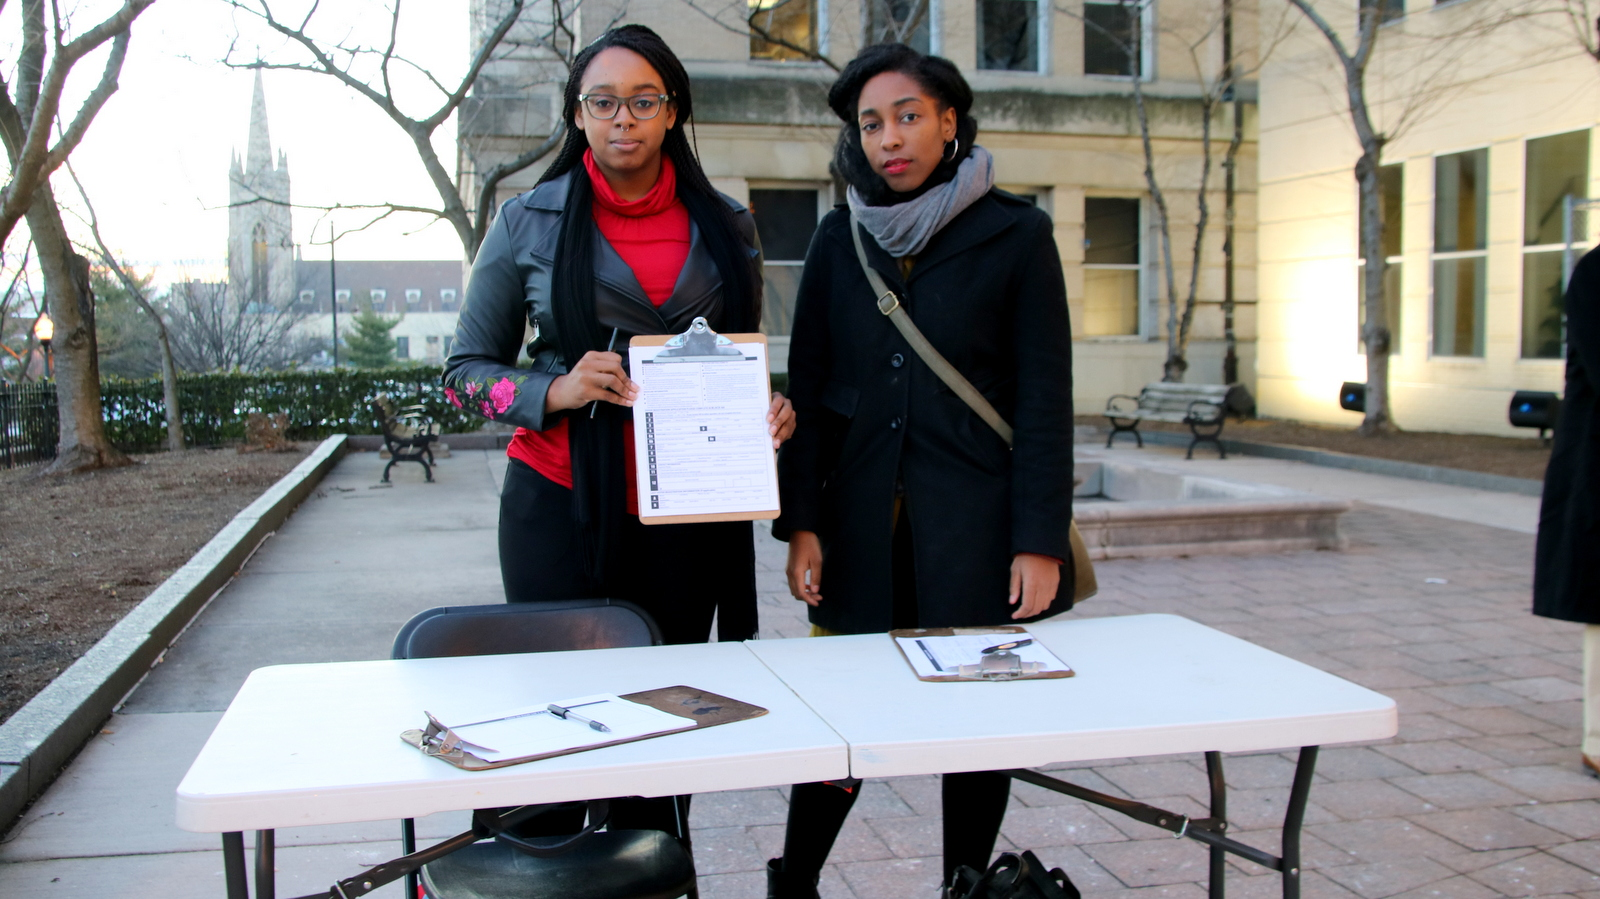 Shamoyia Gardiner and Brittany Oliver, of Not Without Black Women, registered people to vote outside the school board meeting. (Fern Shen)